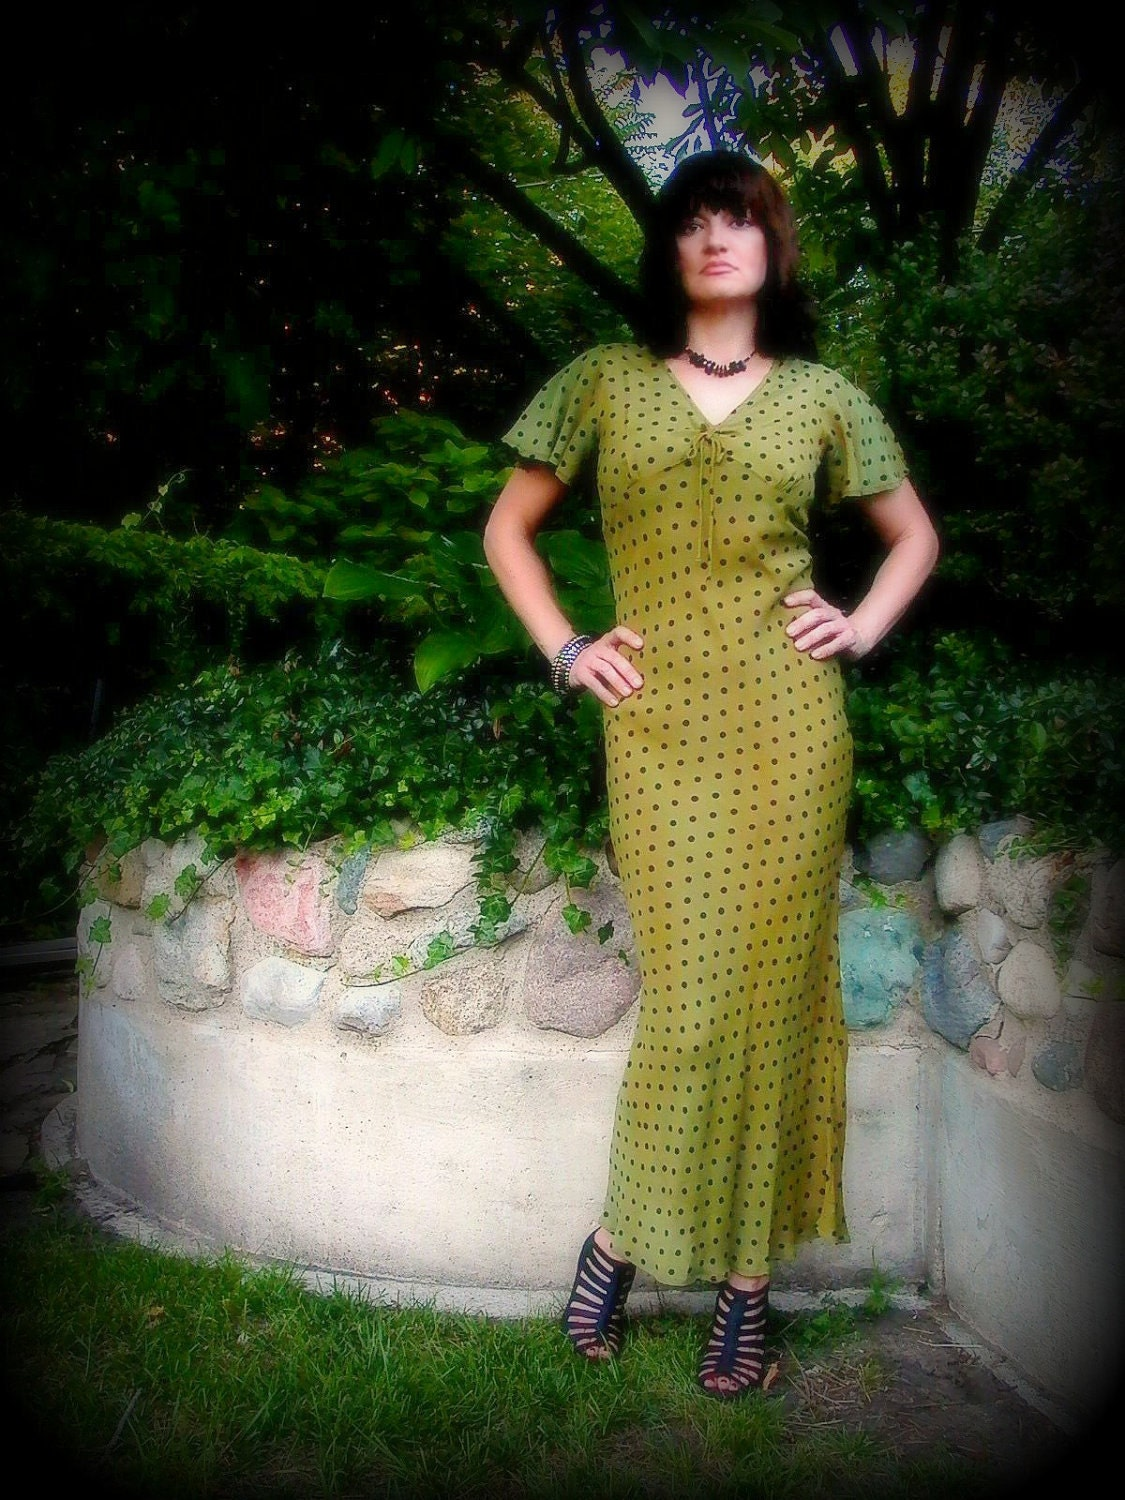 Vintage Green Dress 30s - 80s Bias Cut Olive with Black Polka Dots and Flutter Sleeves, Fishtail Hem - TAGT Team - Fire Grog Studio